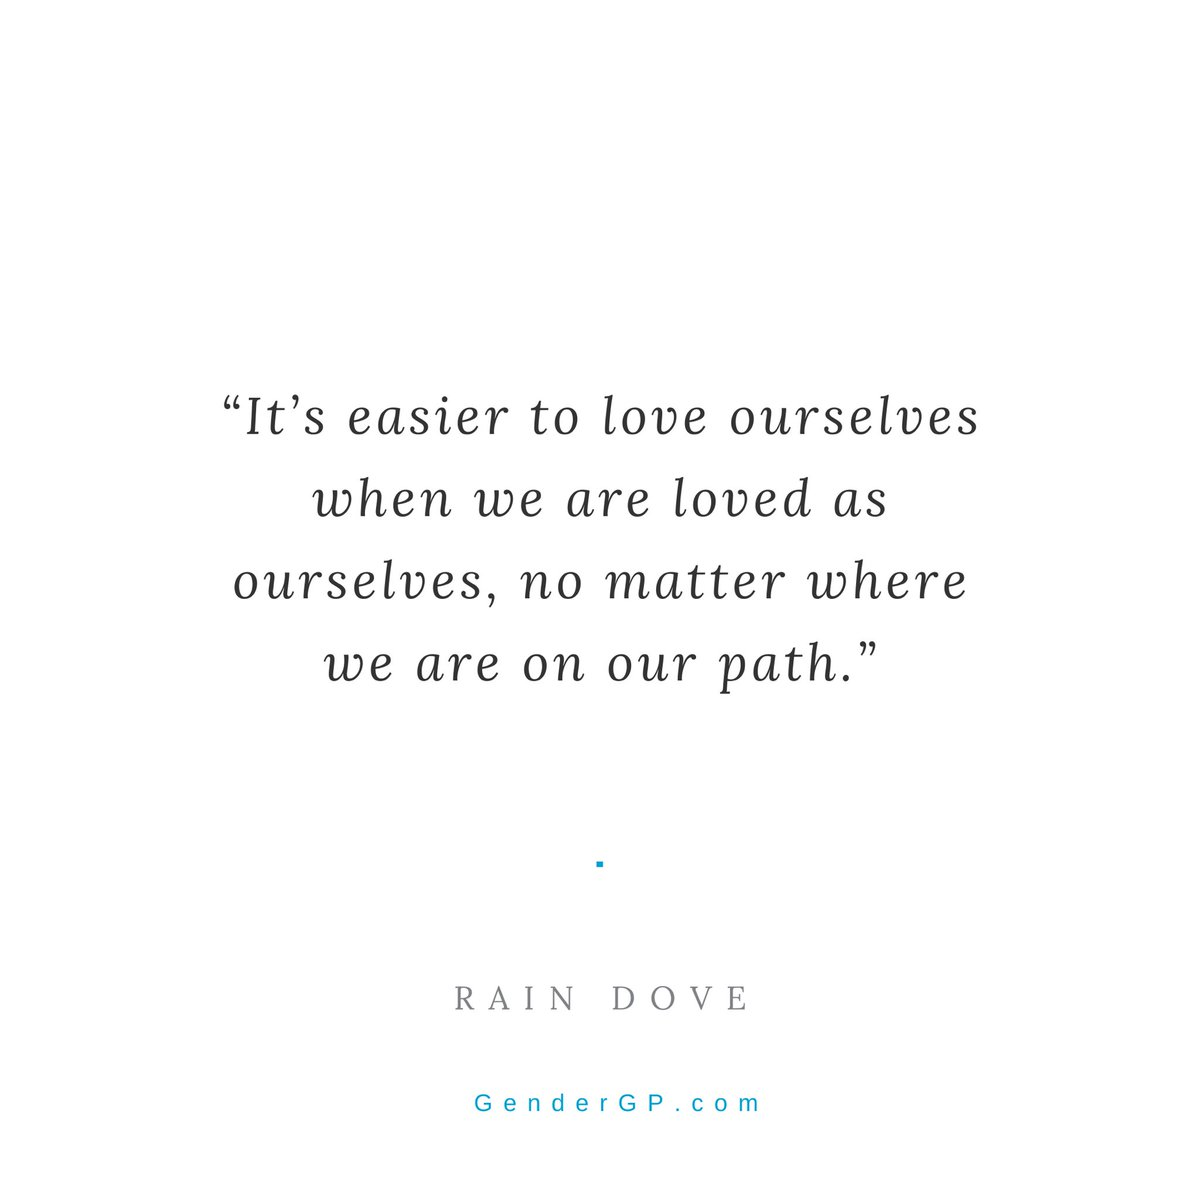 """""""It's easier to love ourselves when we are loved as ourselves, no matter where we are on our path."""" - @raindovemodel  #TransInspiration #TuesdayThoughts  #TuesdayMotivation<br>http://pic.twitter.com/rZR4yjtKhr"""